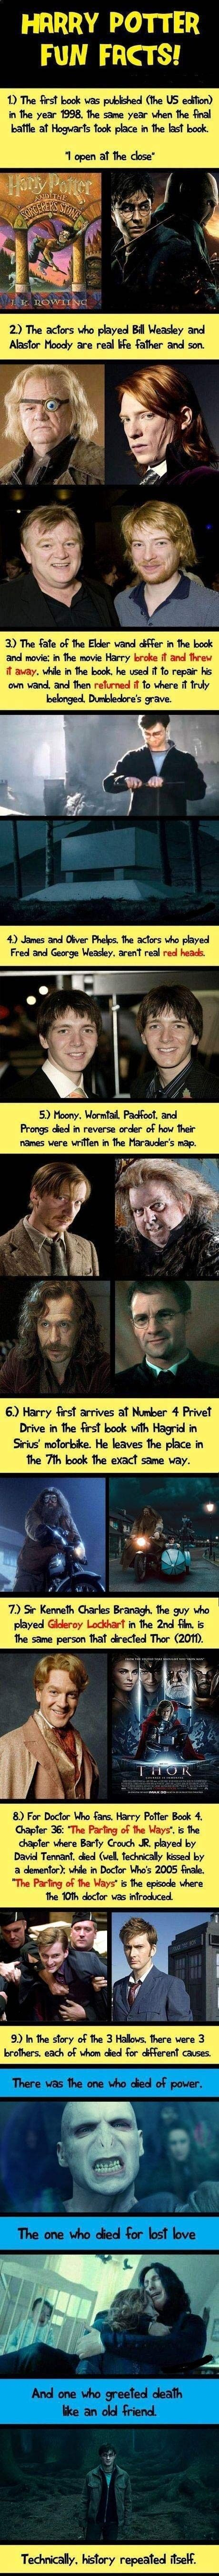 Harry Potter facts… - One Stop Humor: Funny Pictures and Videos! This is so interesting!